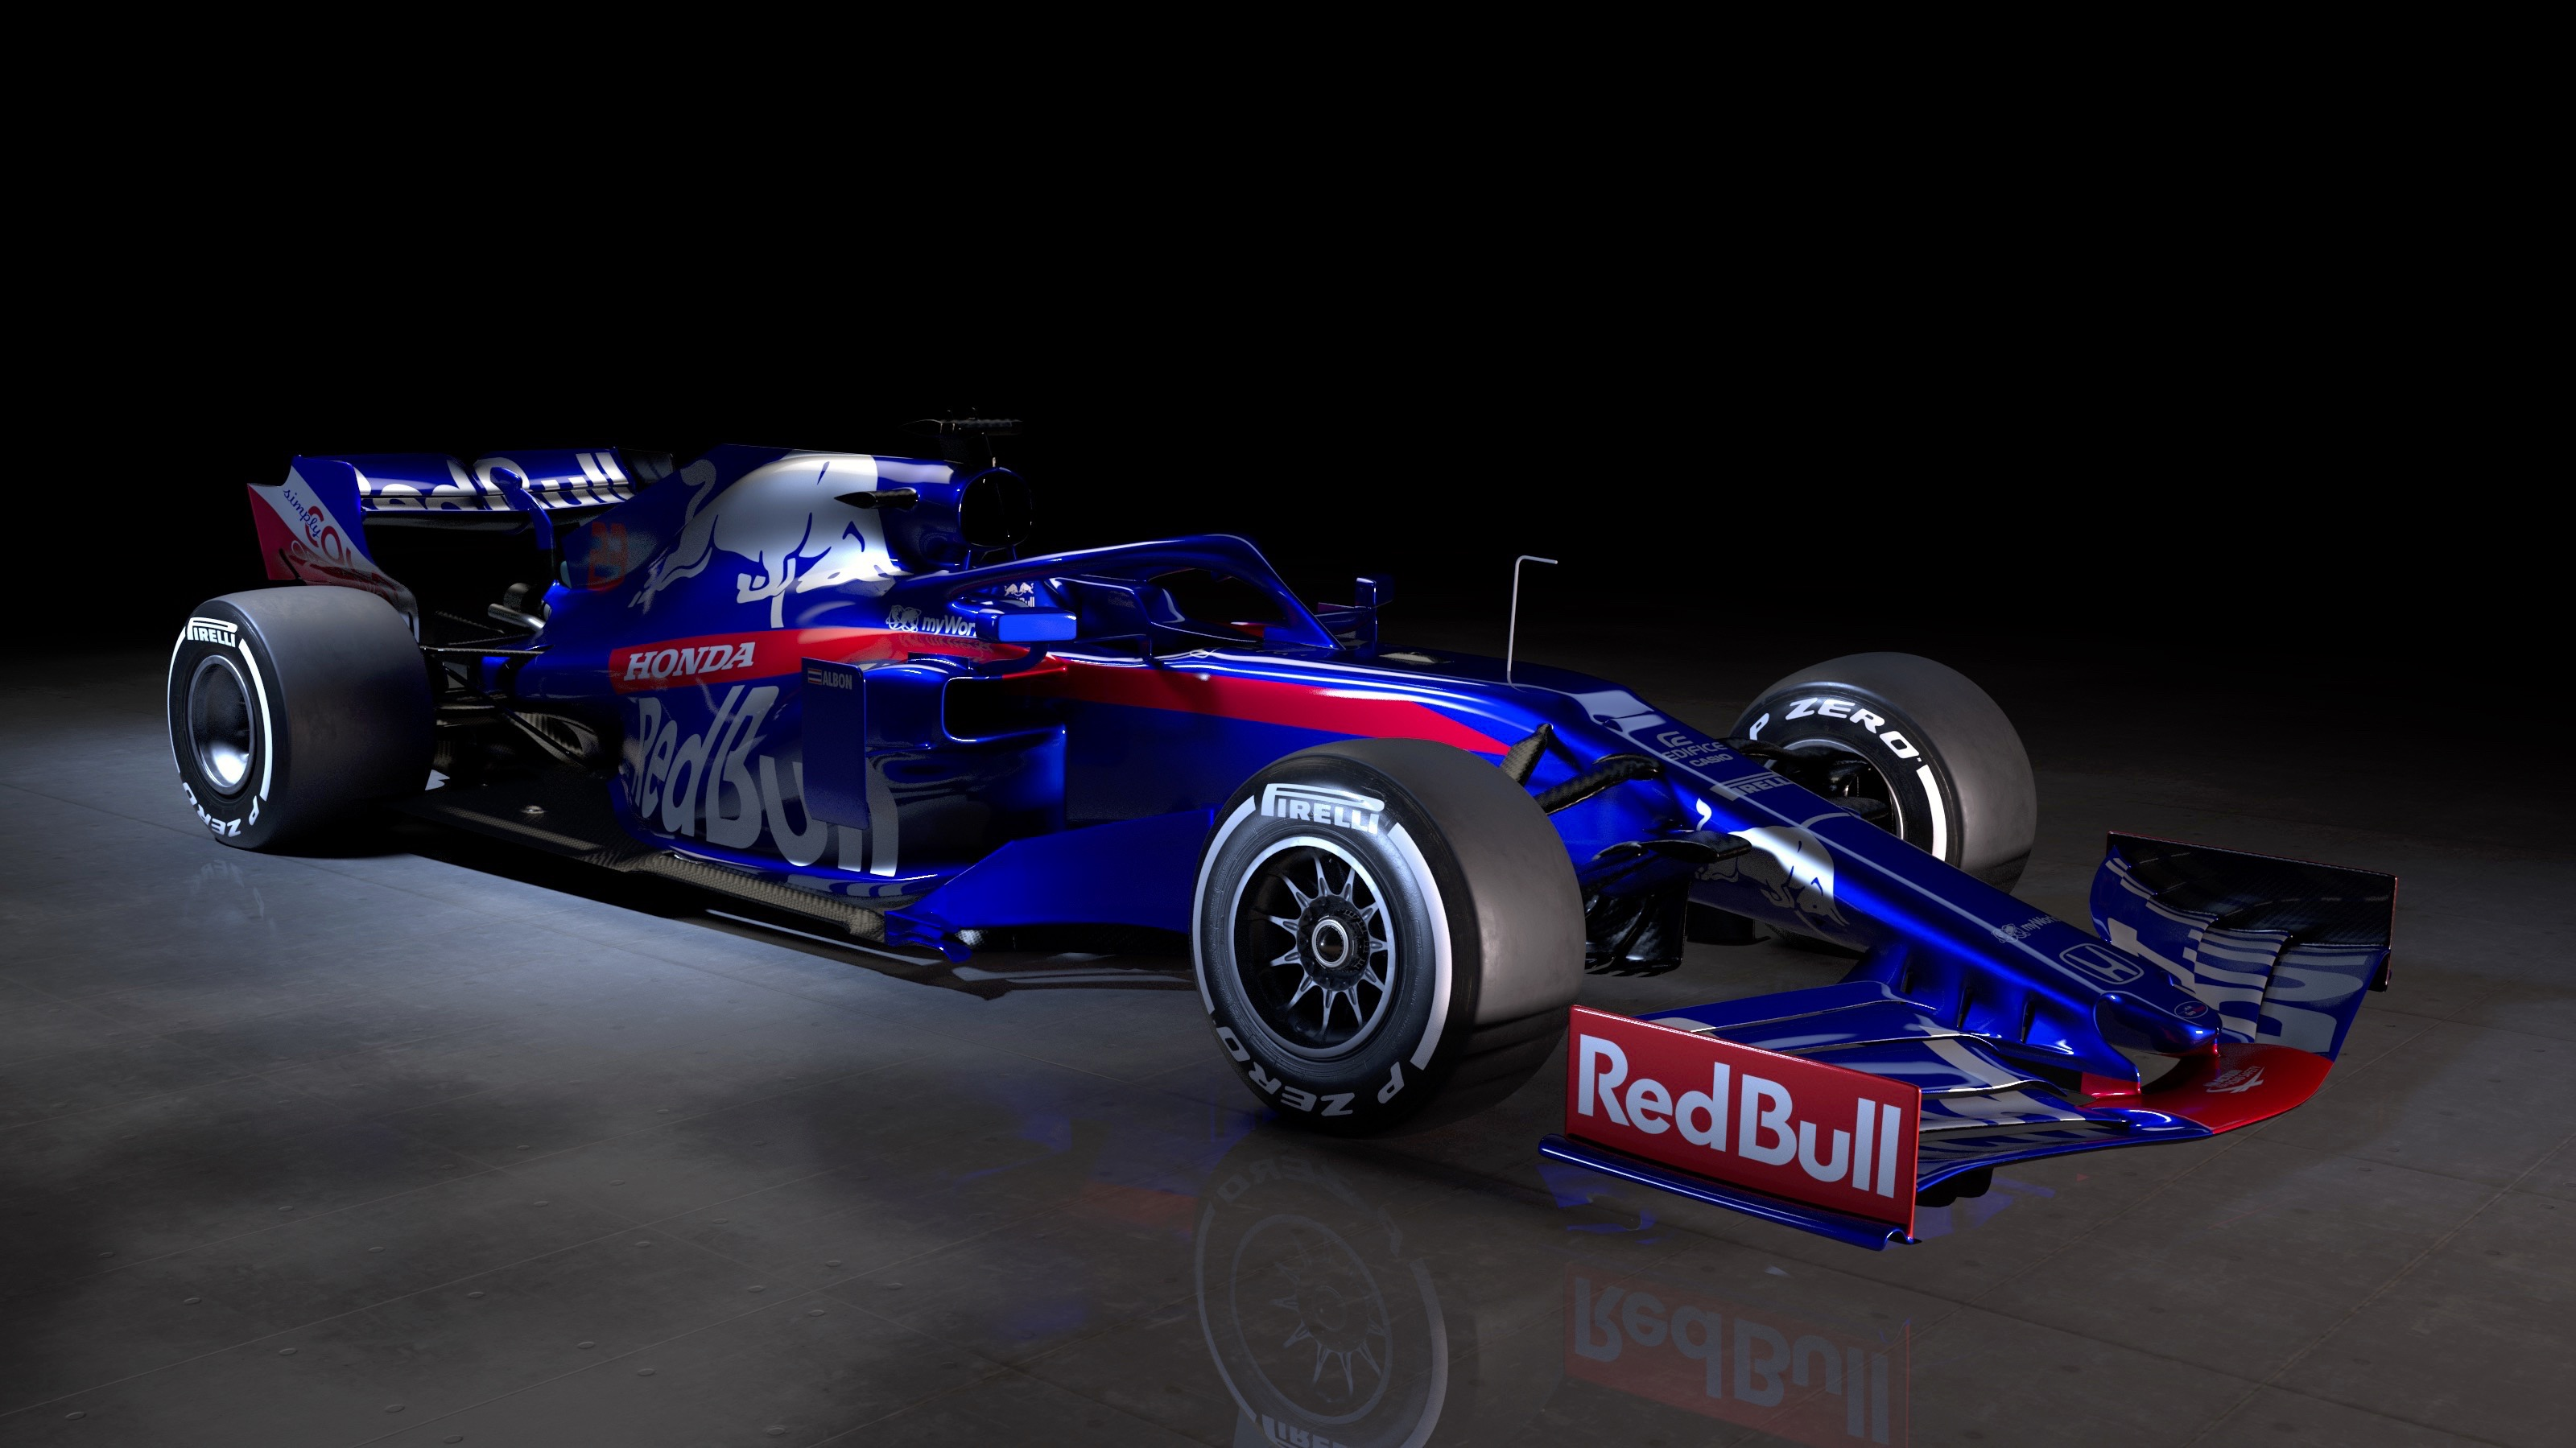 Toro Rosso to change its name to AlphaTauri in 2020